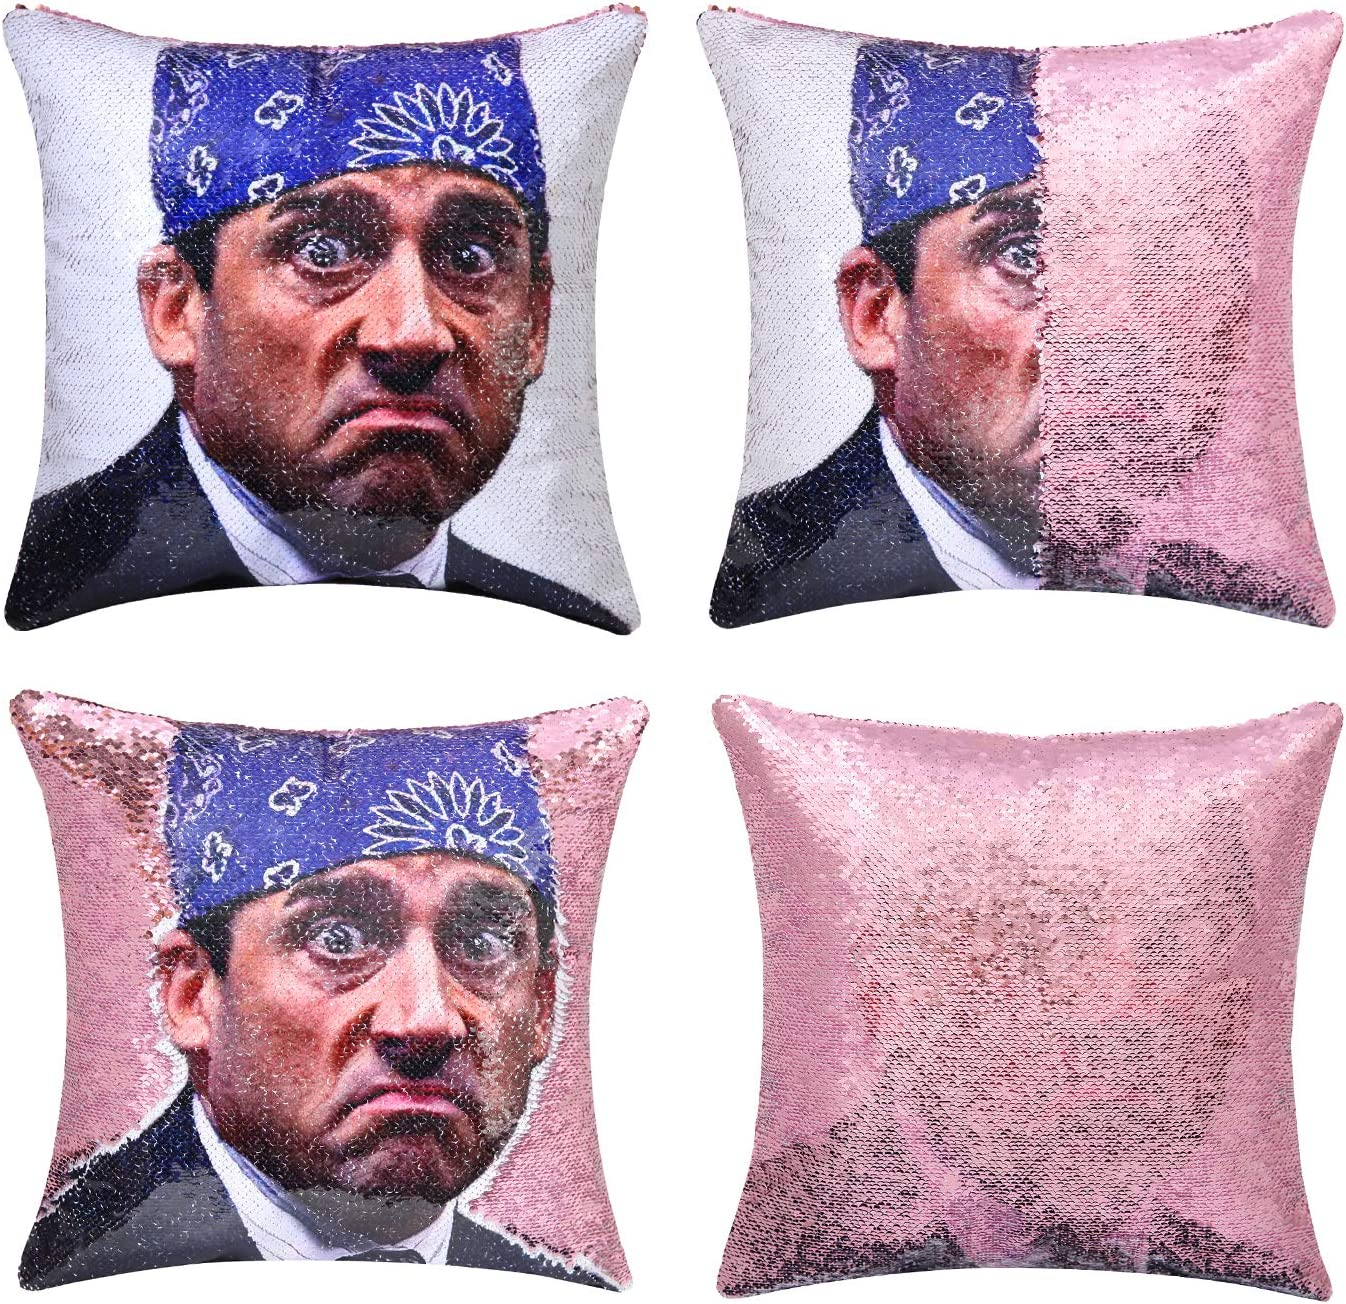 cygnus The Office Prison Mike Quote Humor Reversible Sequin Pillow Cover Mermaid Flip Pillow Case That Color Change Decor Cushion 16x16 inches (Pink Sequin)